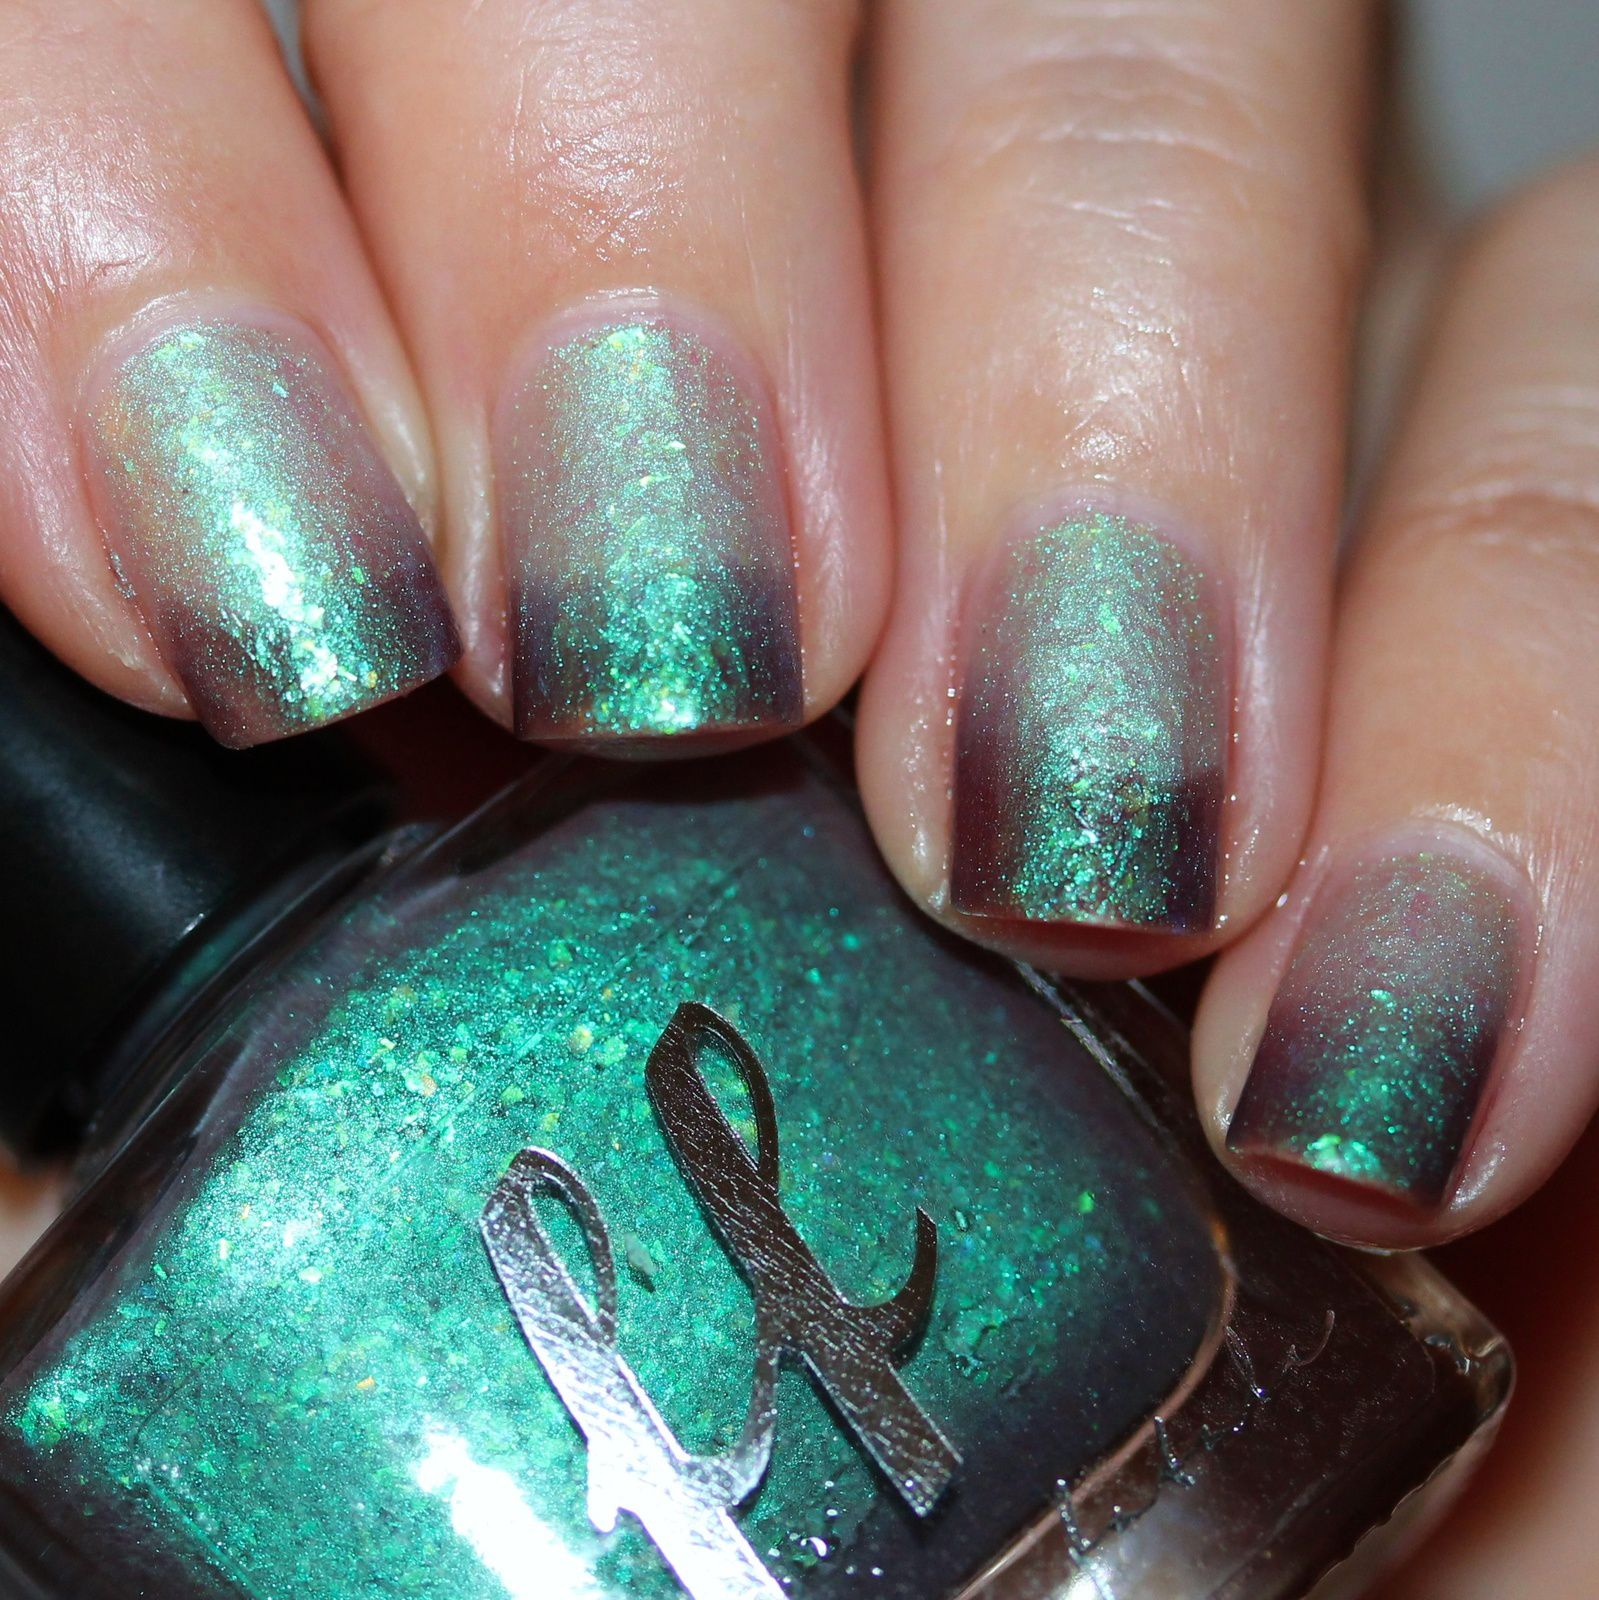 Femme Fatale Cosmetics Trees talking in Their Sleep (Thermal) (3 coats, no top coat)